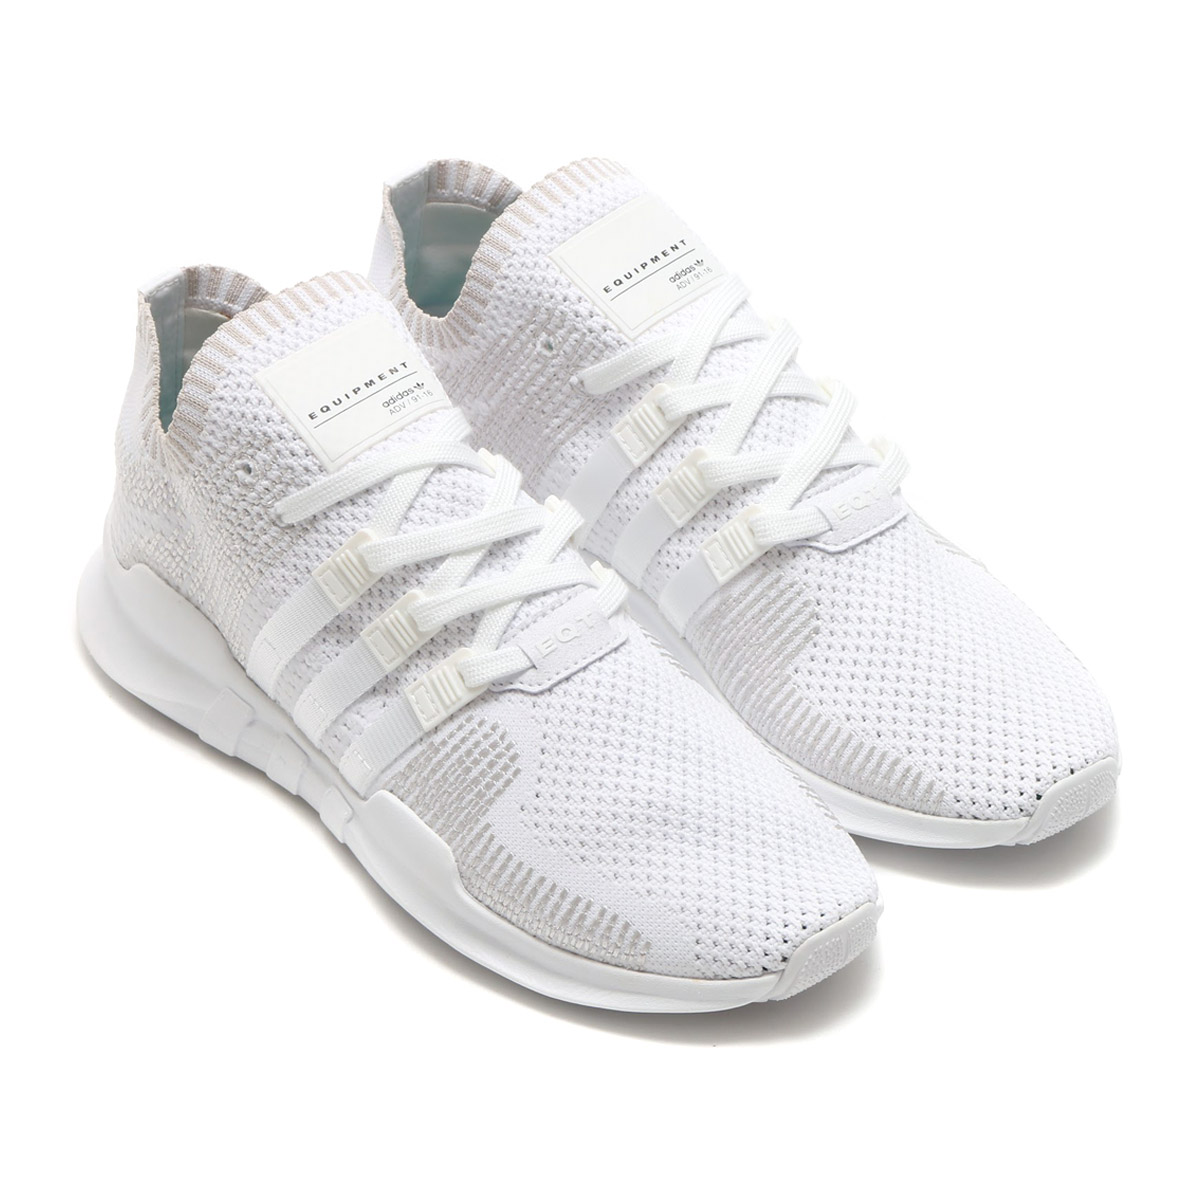 cheap for discount 45f78 b9946 adidas Originals EQT SUPPORTADV PK (Adidas originals EQT support ADV PK)  RUNNING WHITE/RUNNING WHITE/SUB GREEN 17FW-I